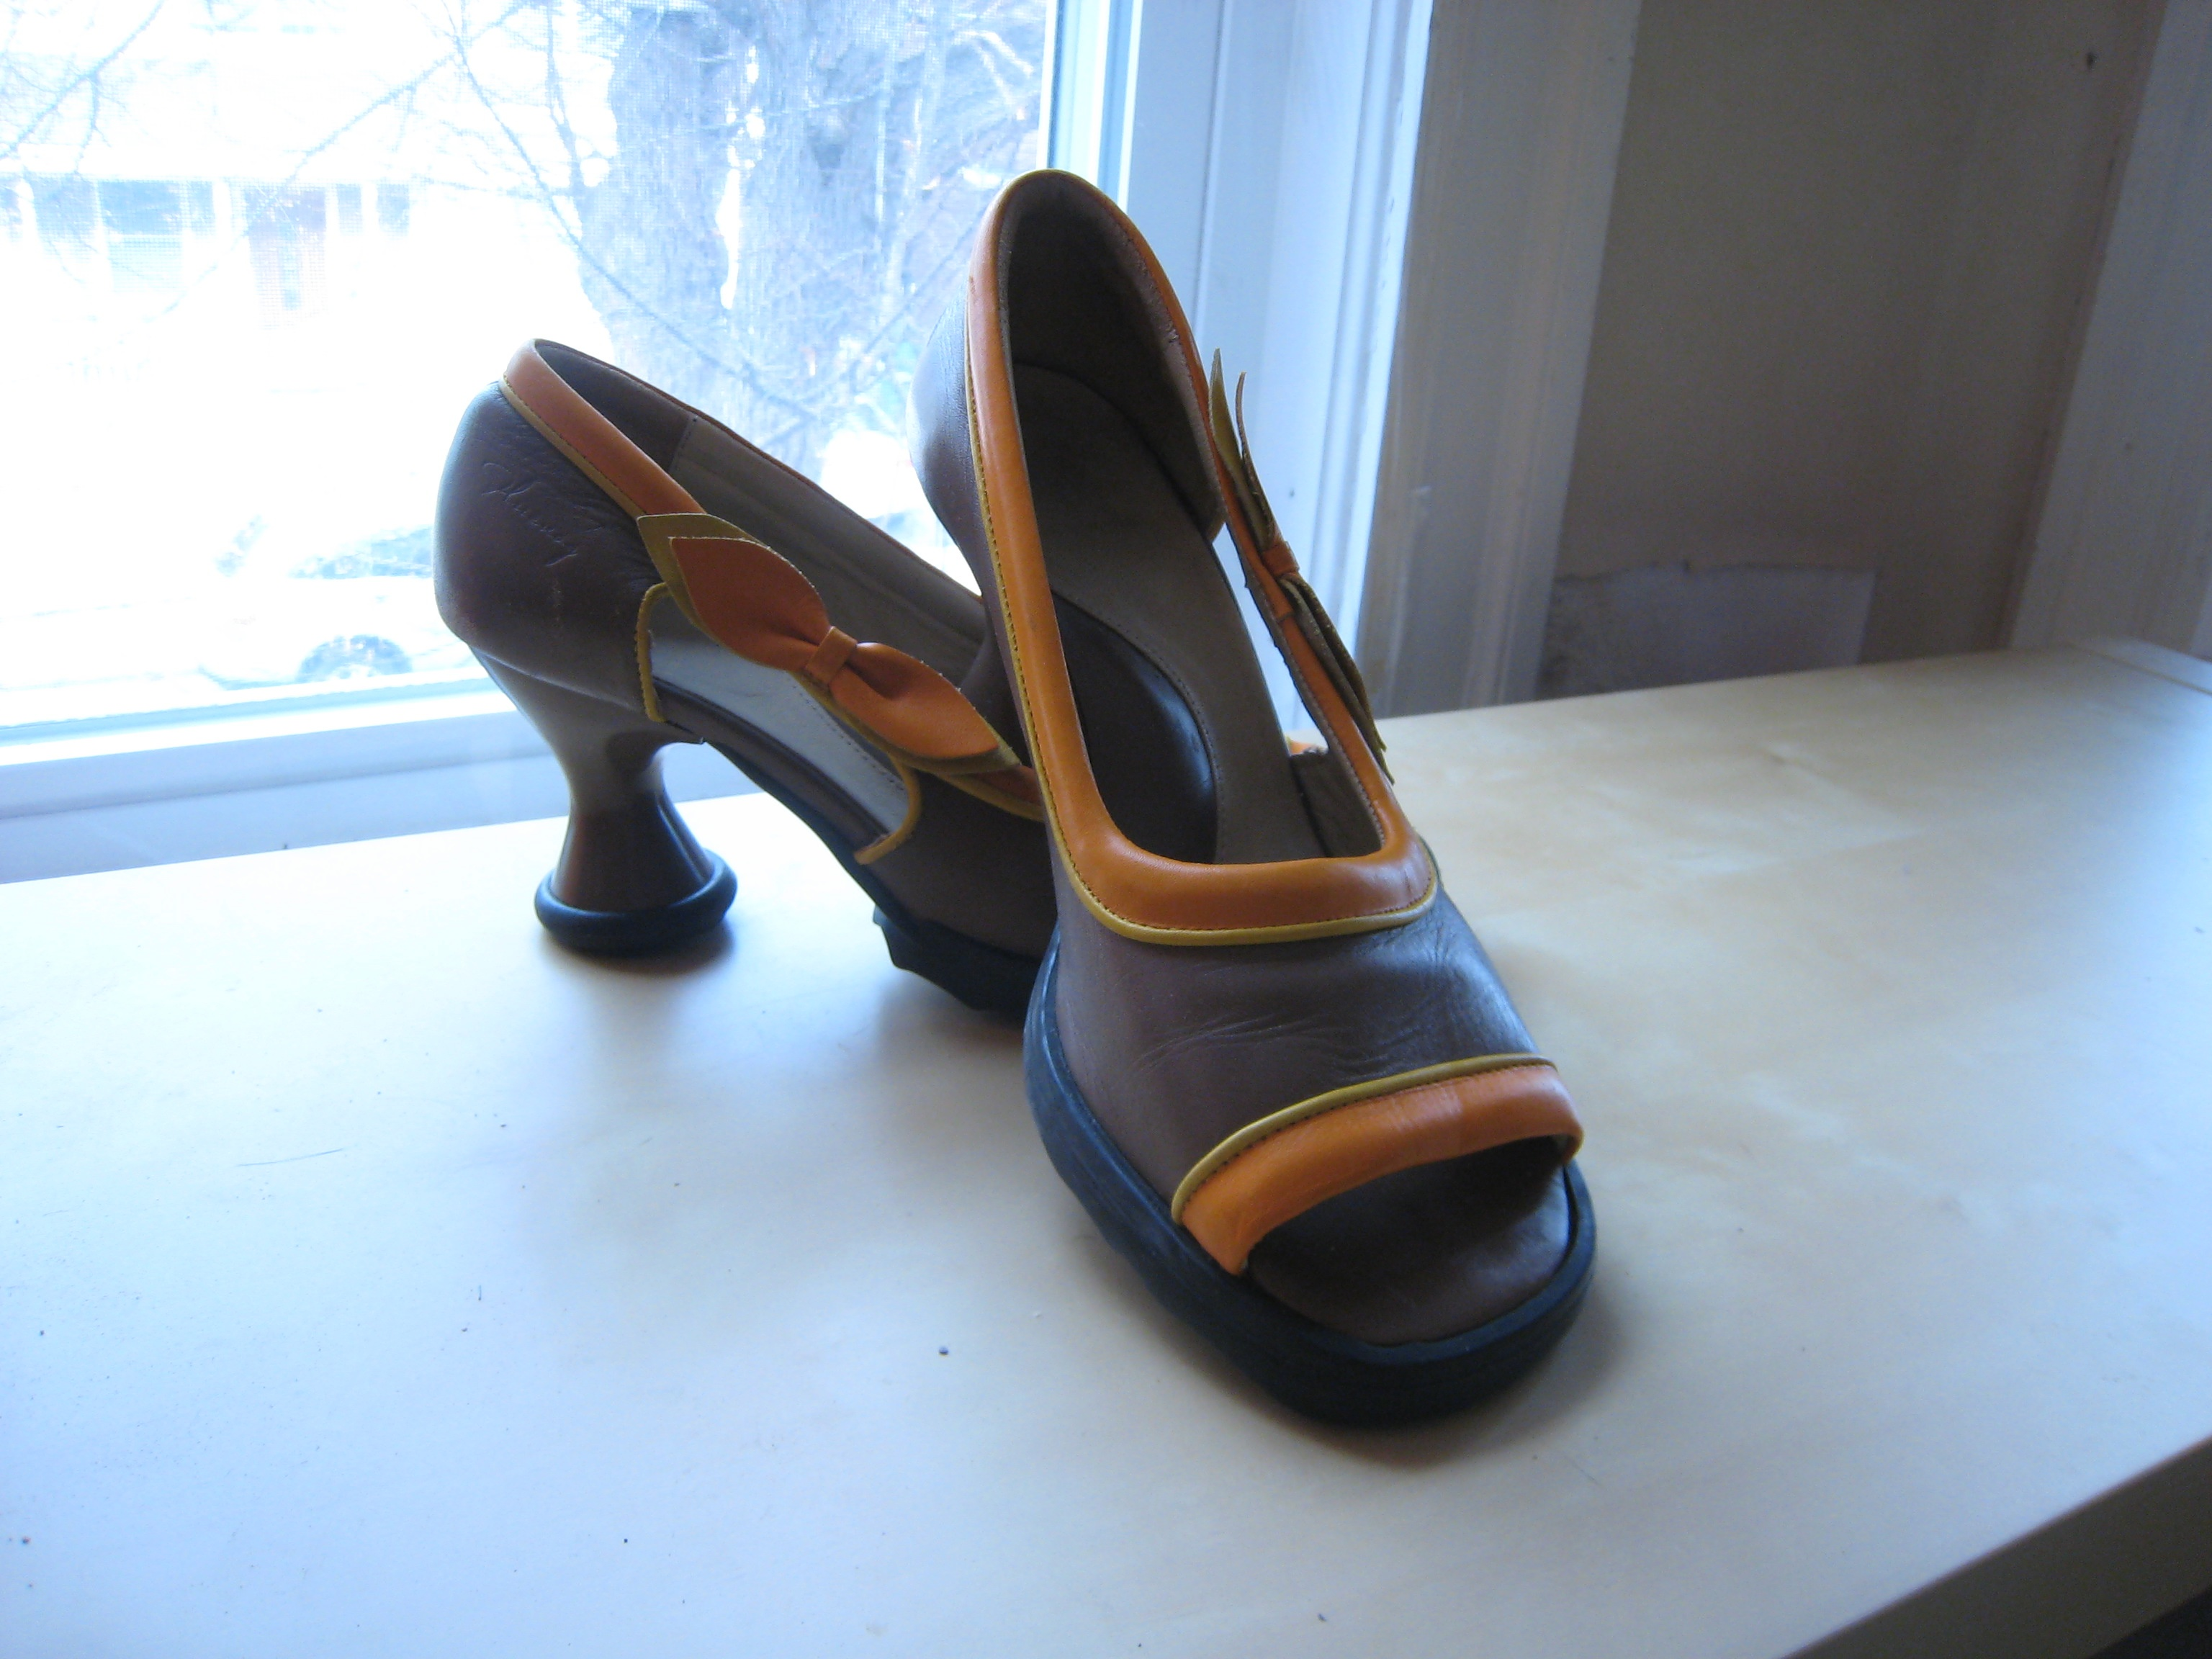 Fluevog Mini Bebe sz 11 | Flickr - Photo Sharing!